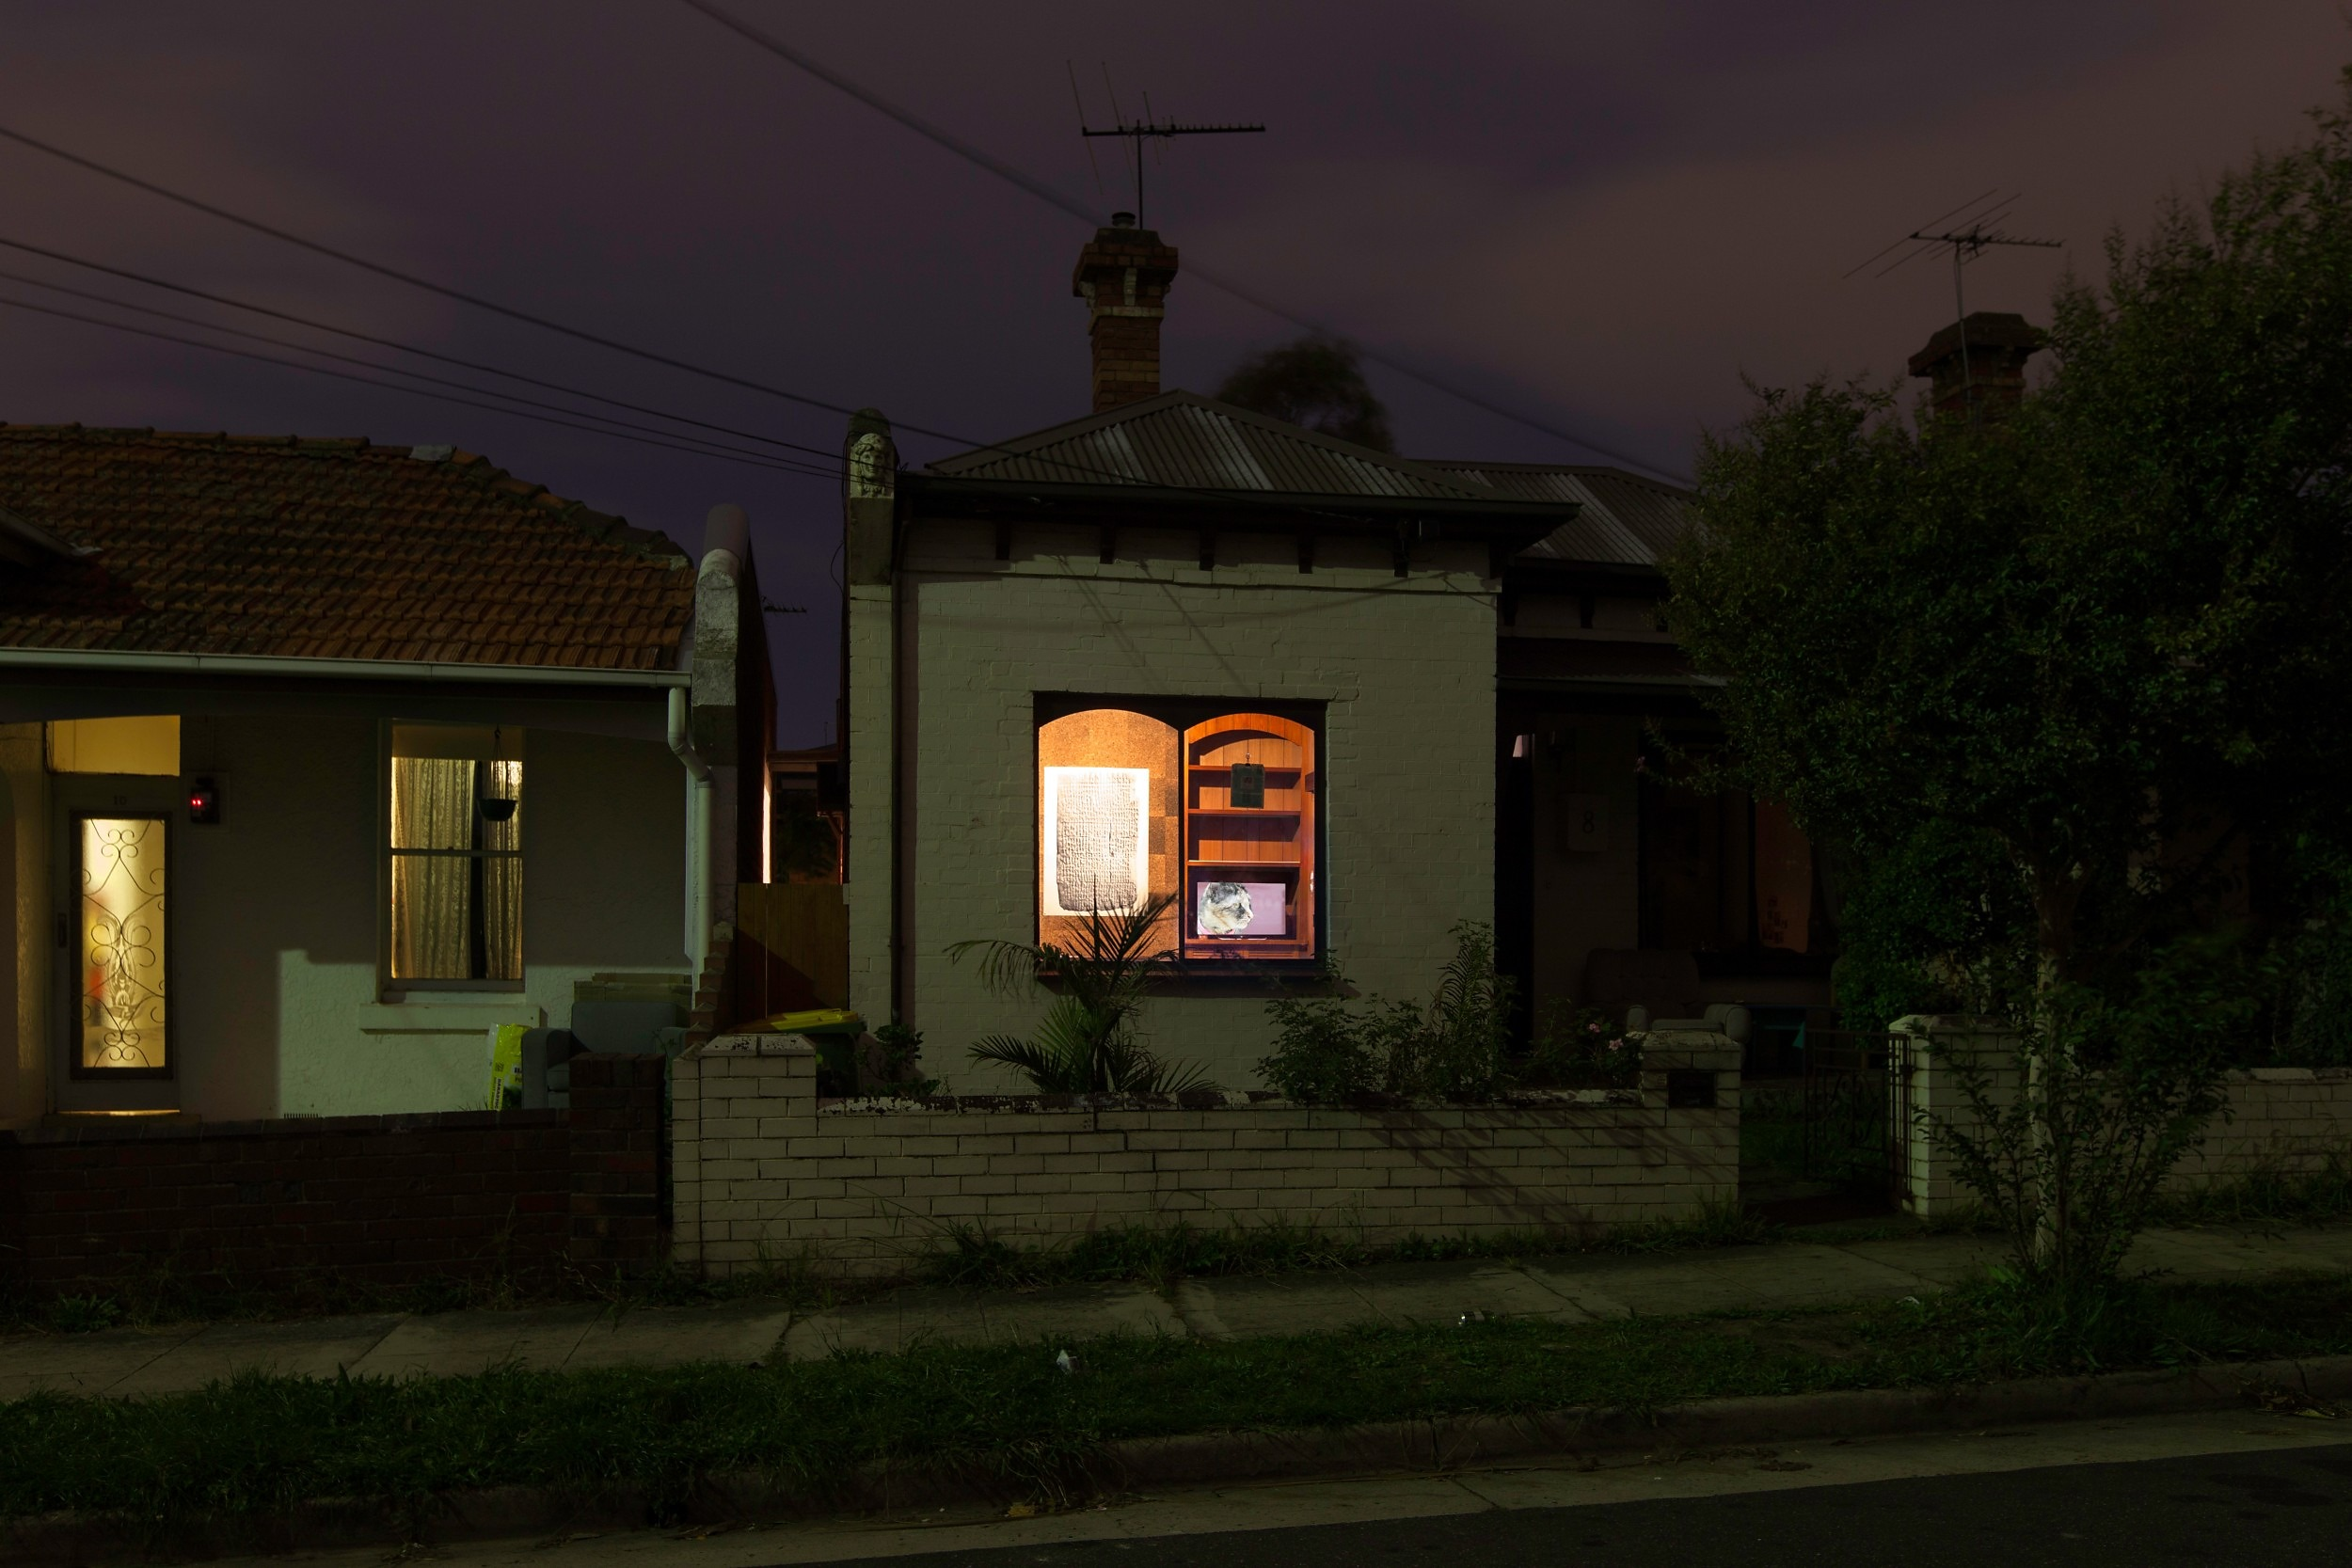 Rohan Schwartz, The Golden Lion, 2014 Installation view, Number Eight Agnes Street, Melbourne, VIC, Australia. Organized by Matthew Greaves and Dan Miller